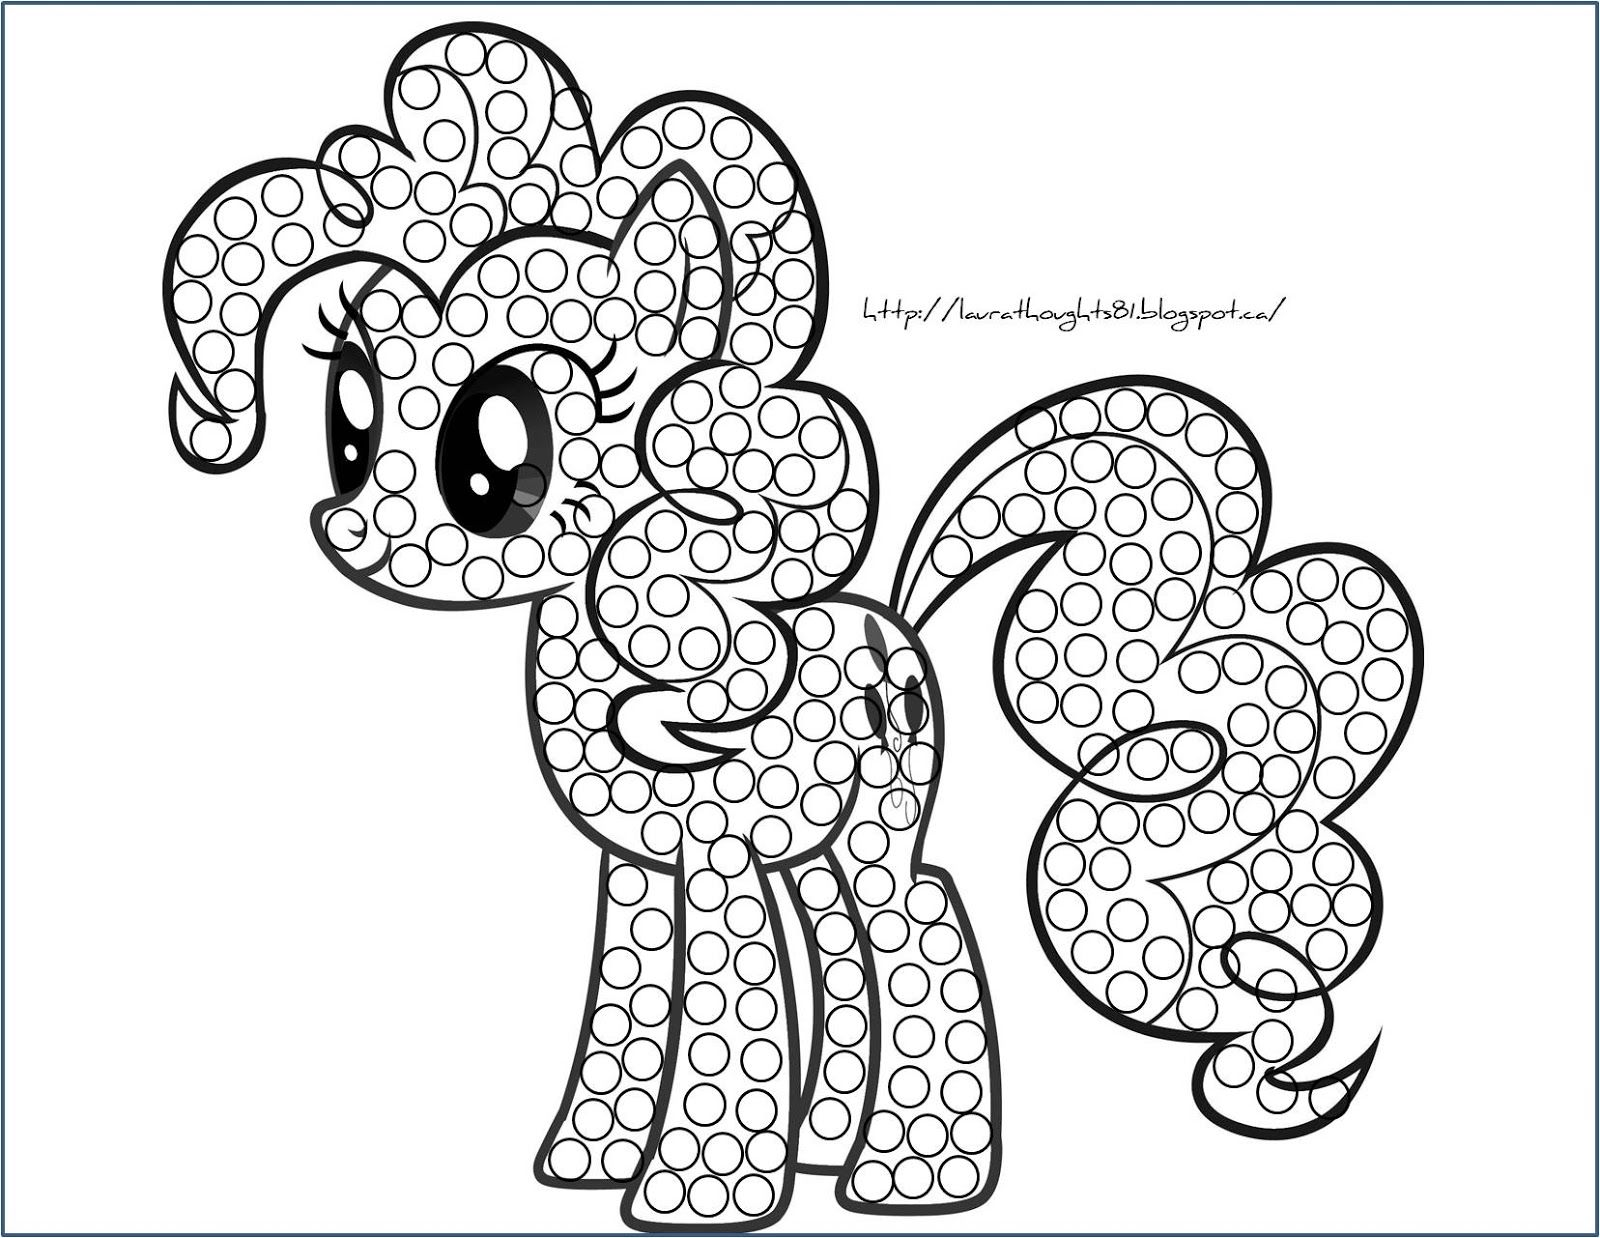 Pinkie Pie Jpg 1600 1238 Q Tip Painting Painting Templates My Little Pony Party